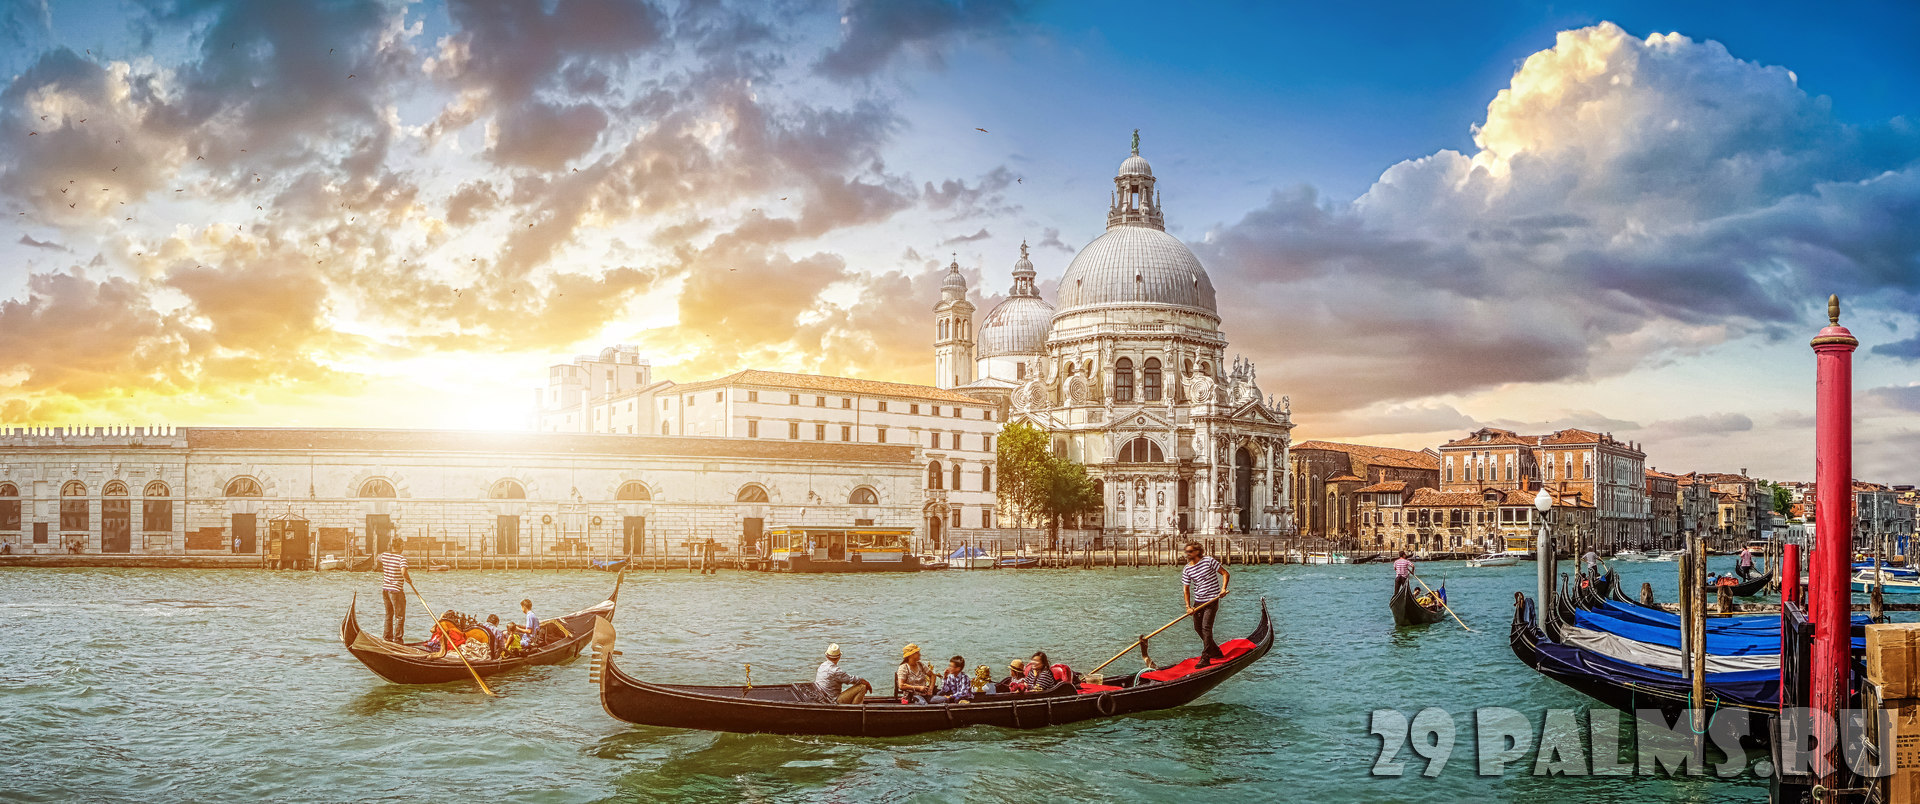 Клуб Павла Аксенова. Италия. Венеция. Гранд Канал. Romantic Venice Gondola scene on Canal Grande at sunset, Italy. Фото pandionhiatus3 - Depositphotos